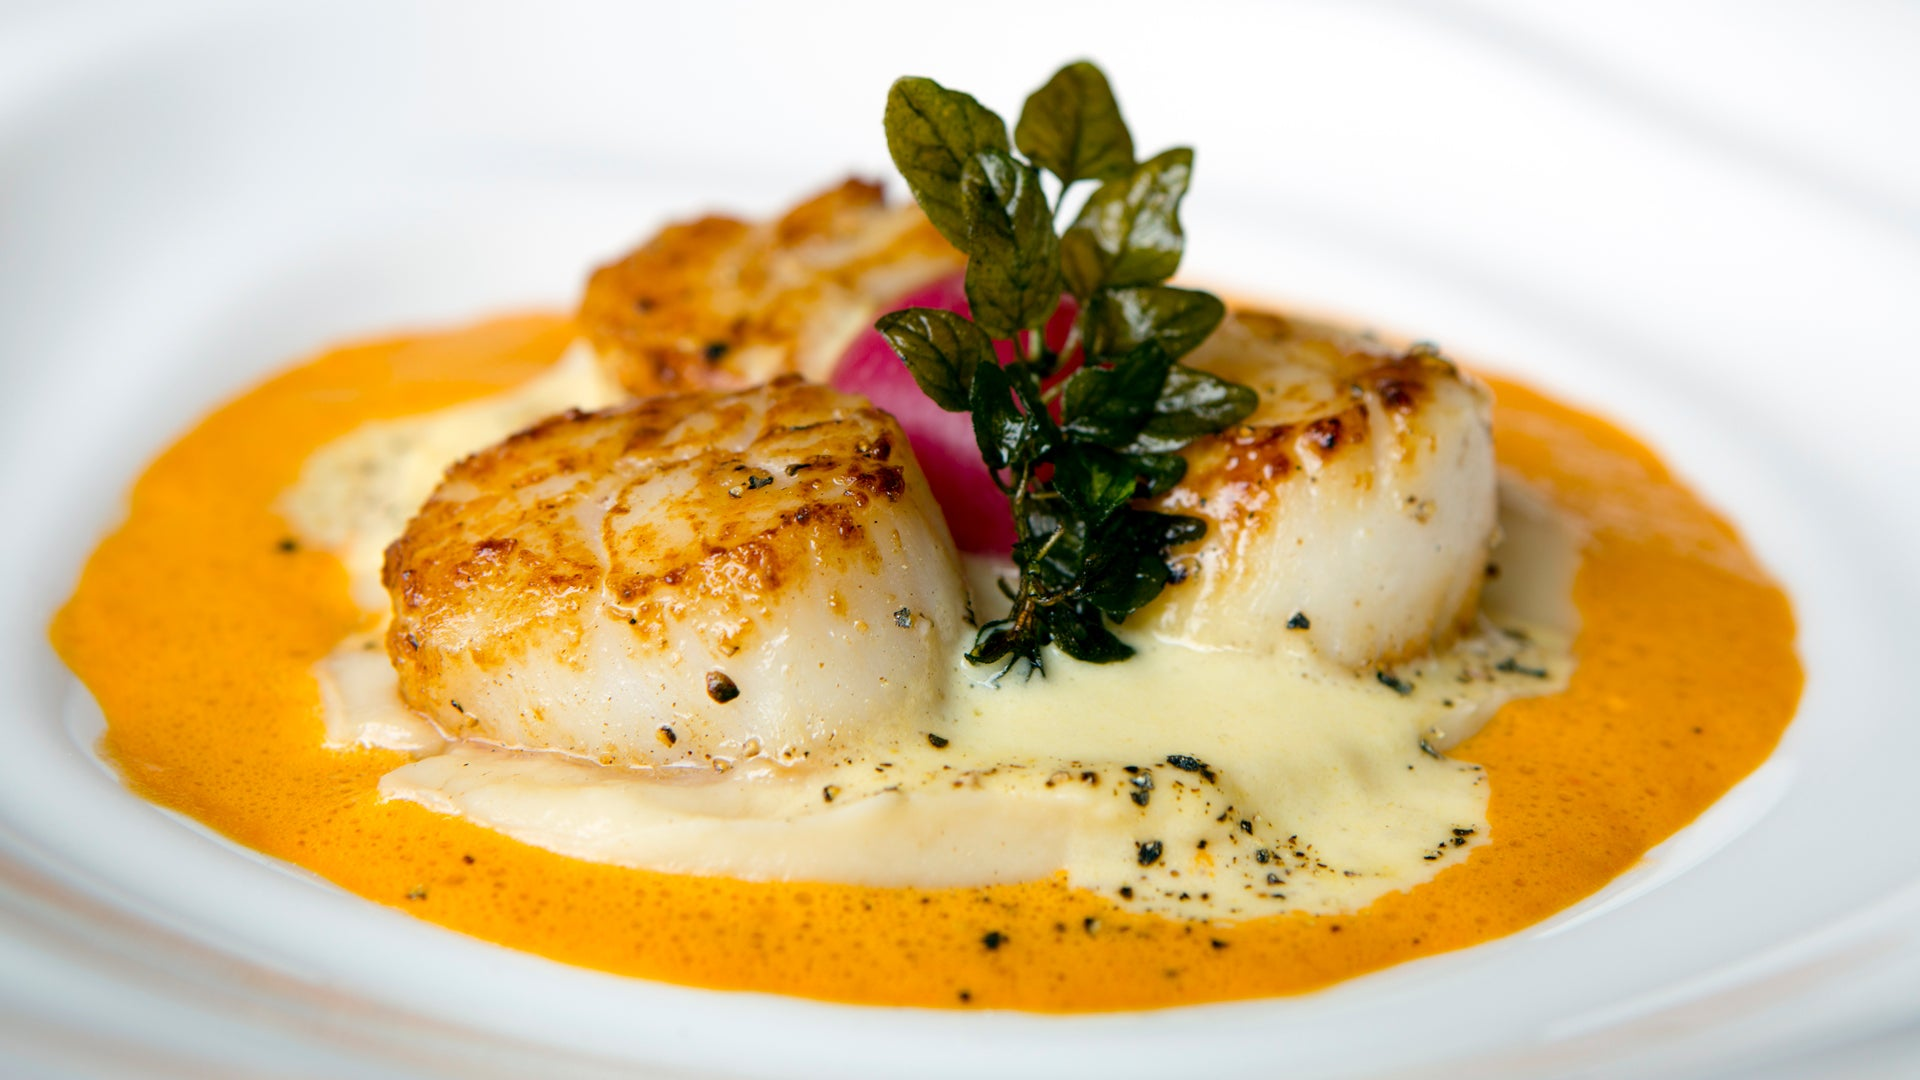 Seared Scallops With Hot Sauce Beurre Blanc